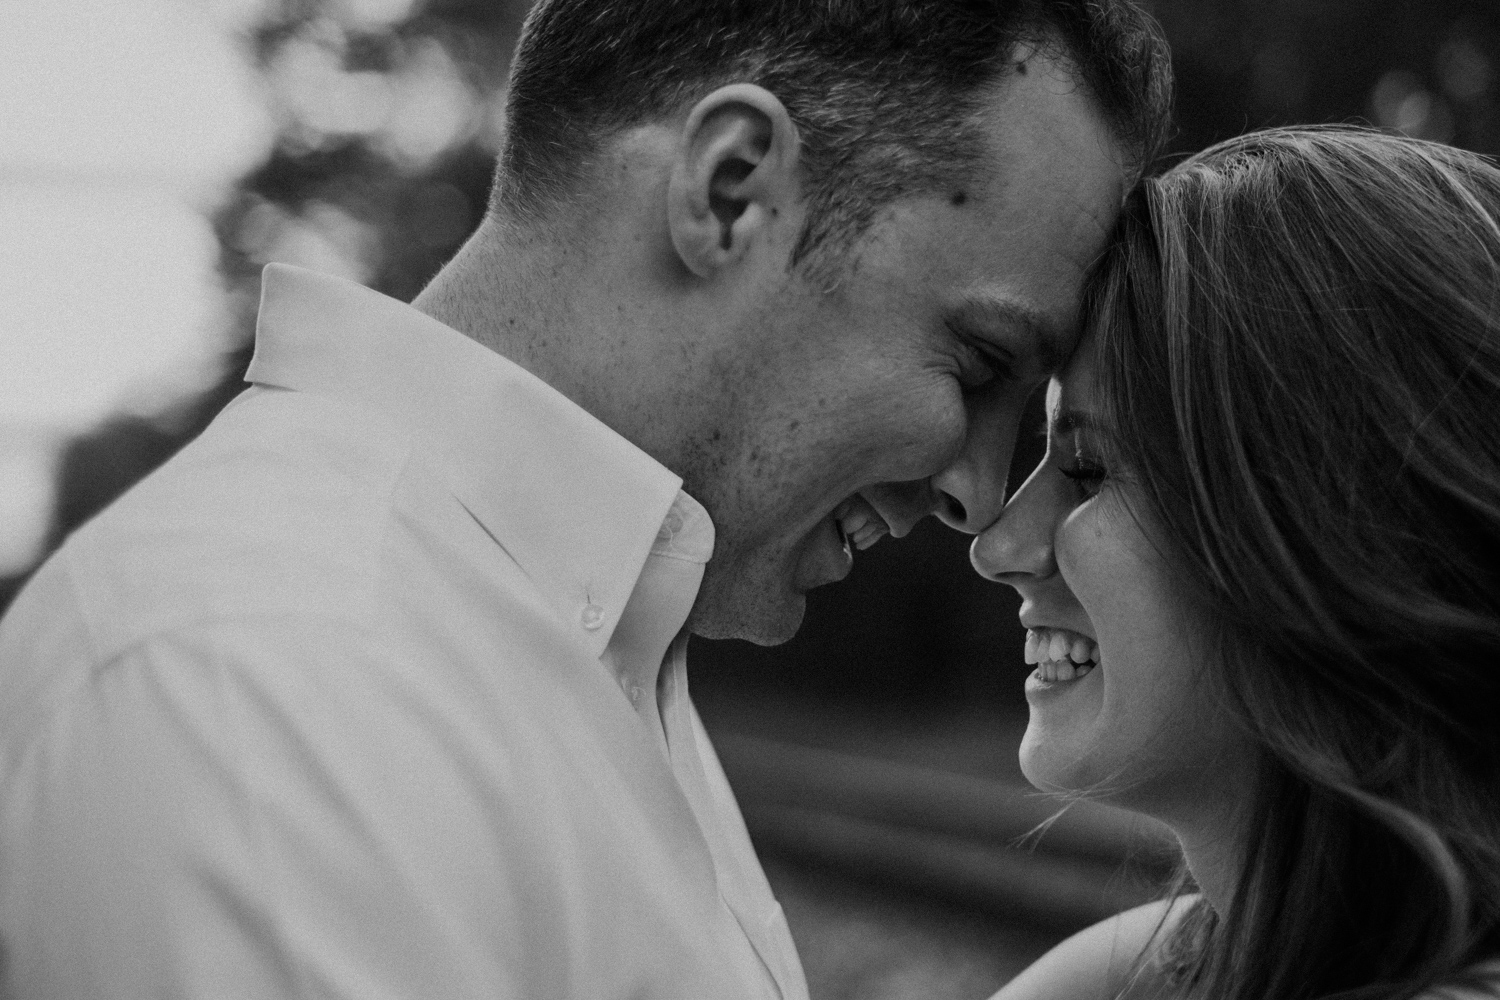 Engagement session in Maryland with romantic happy couple